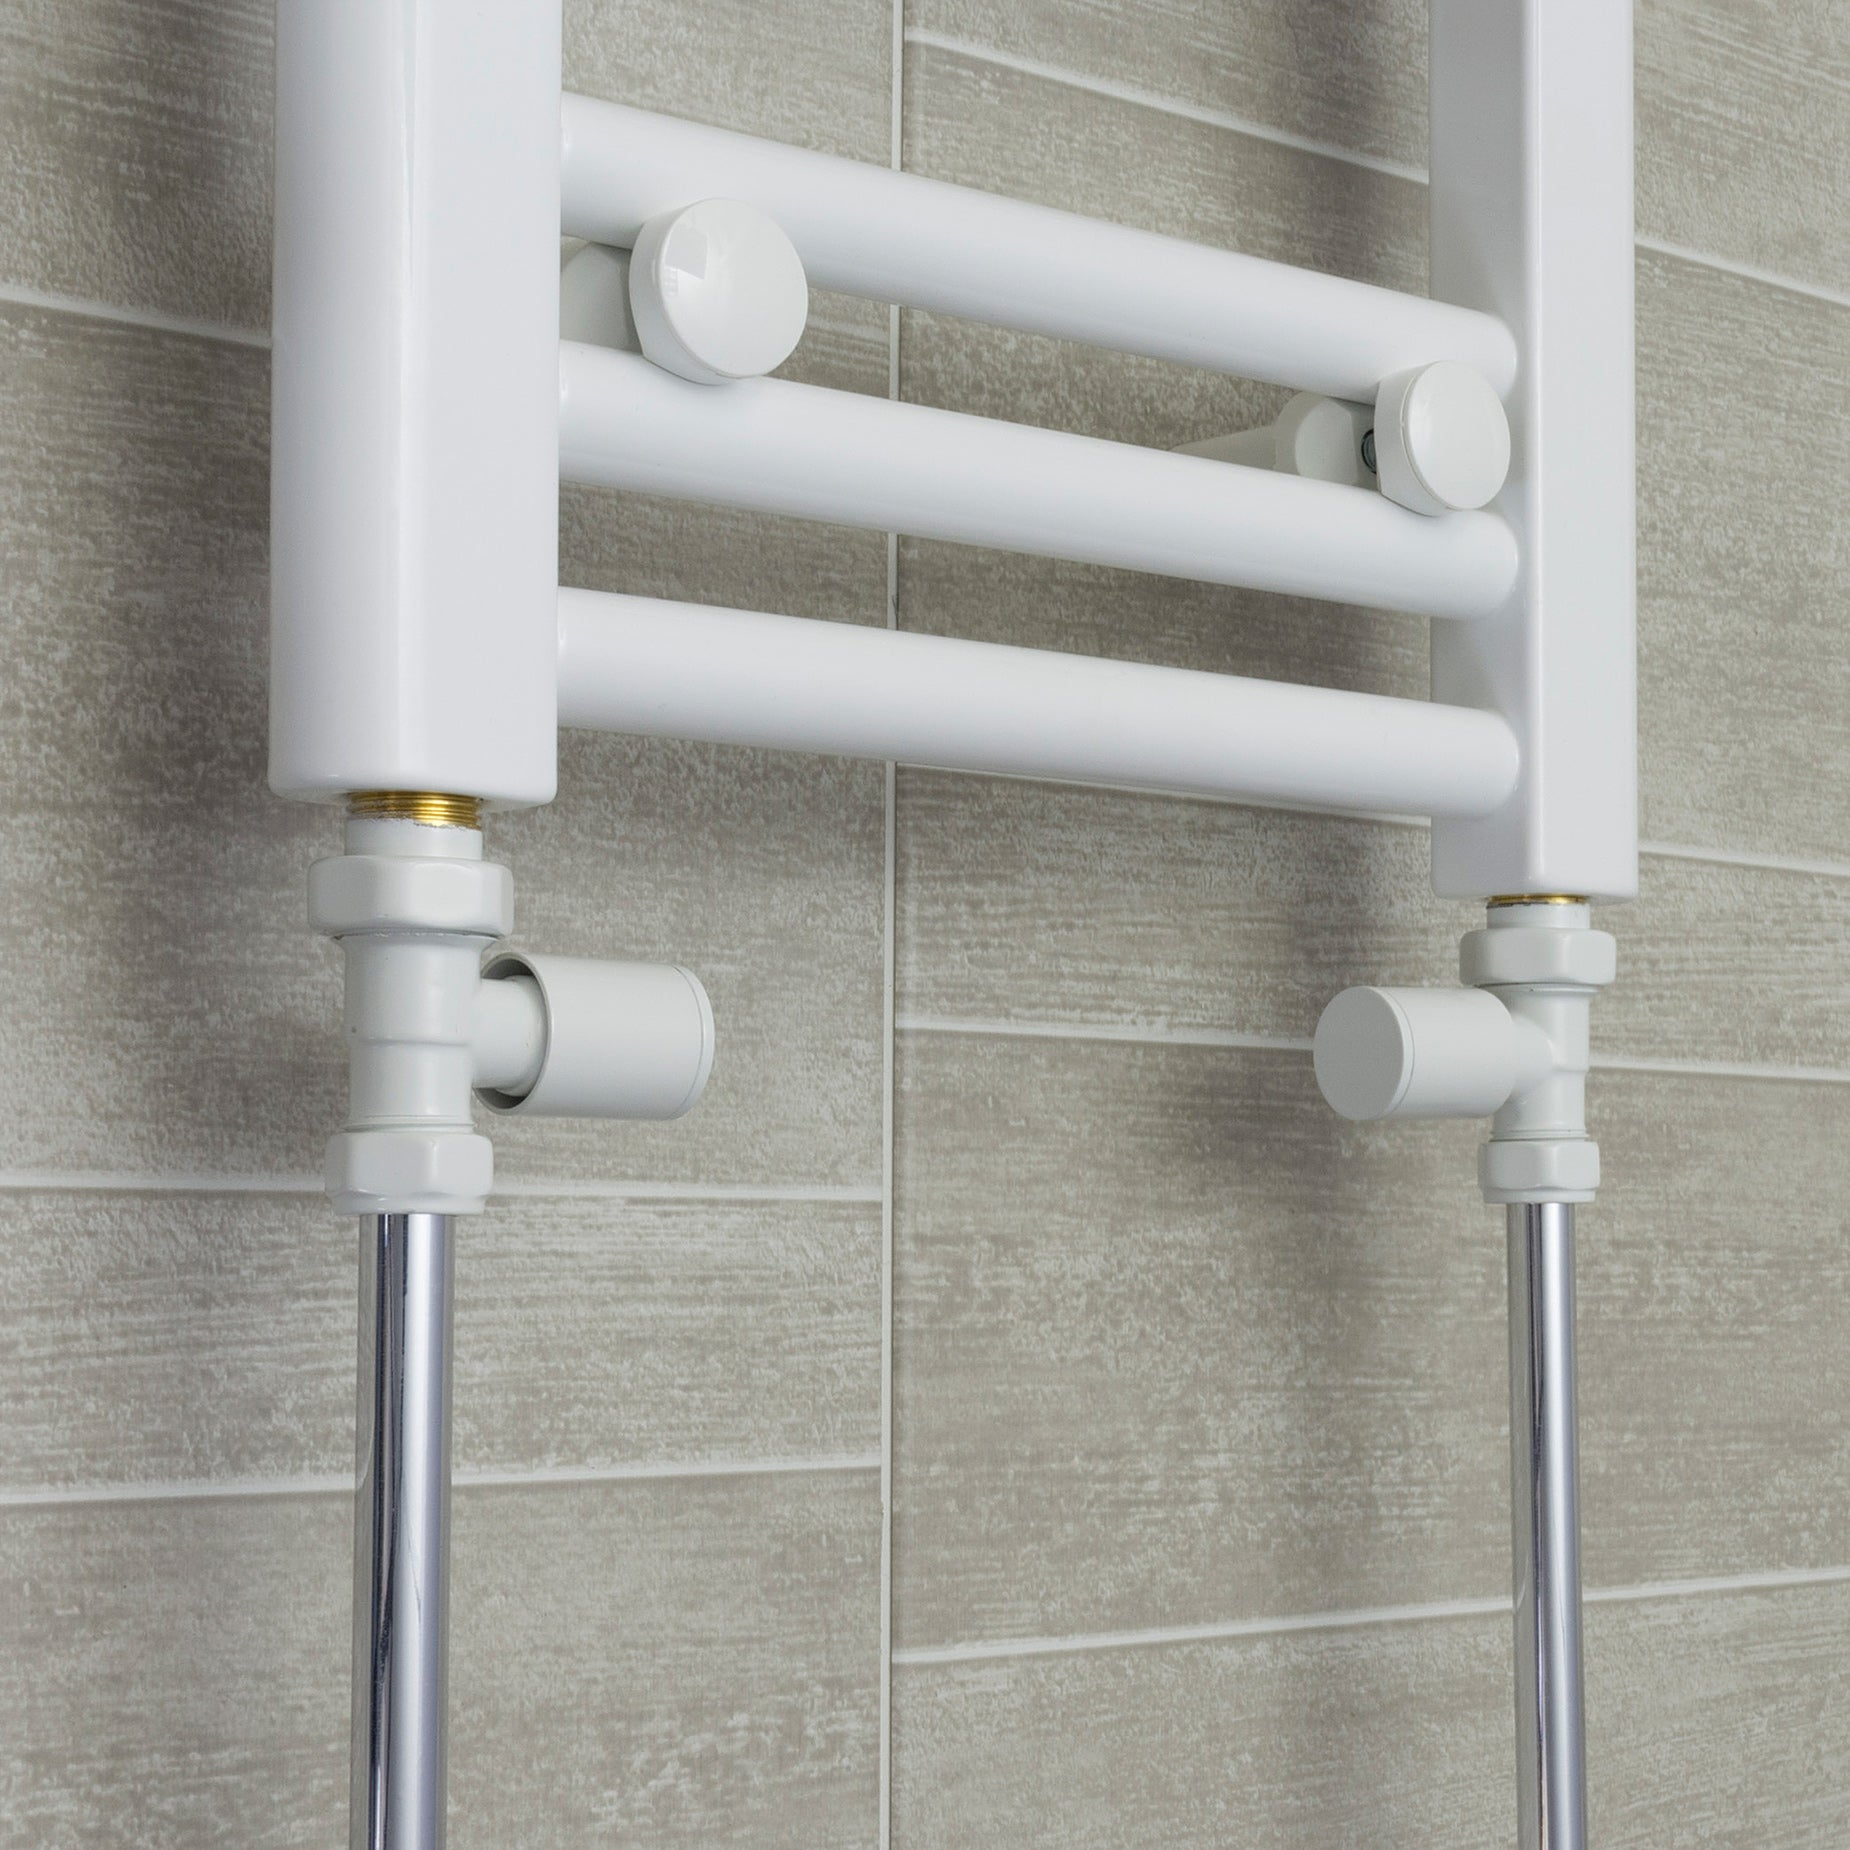 800mm Wide 1600mm High Flat White Heated Towel Rail Radiator HTR